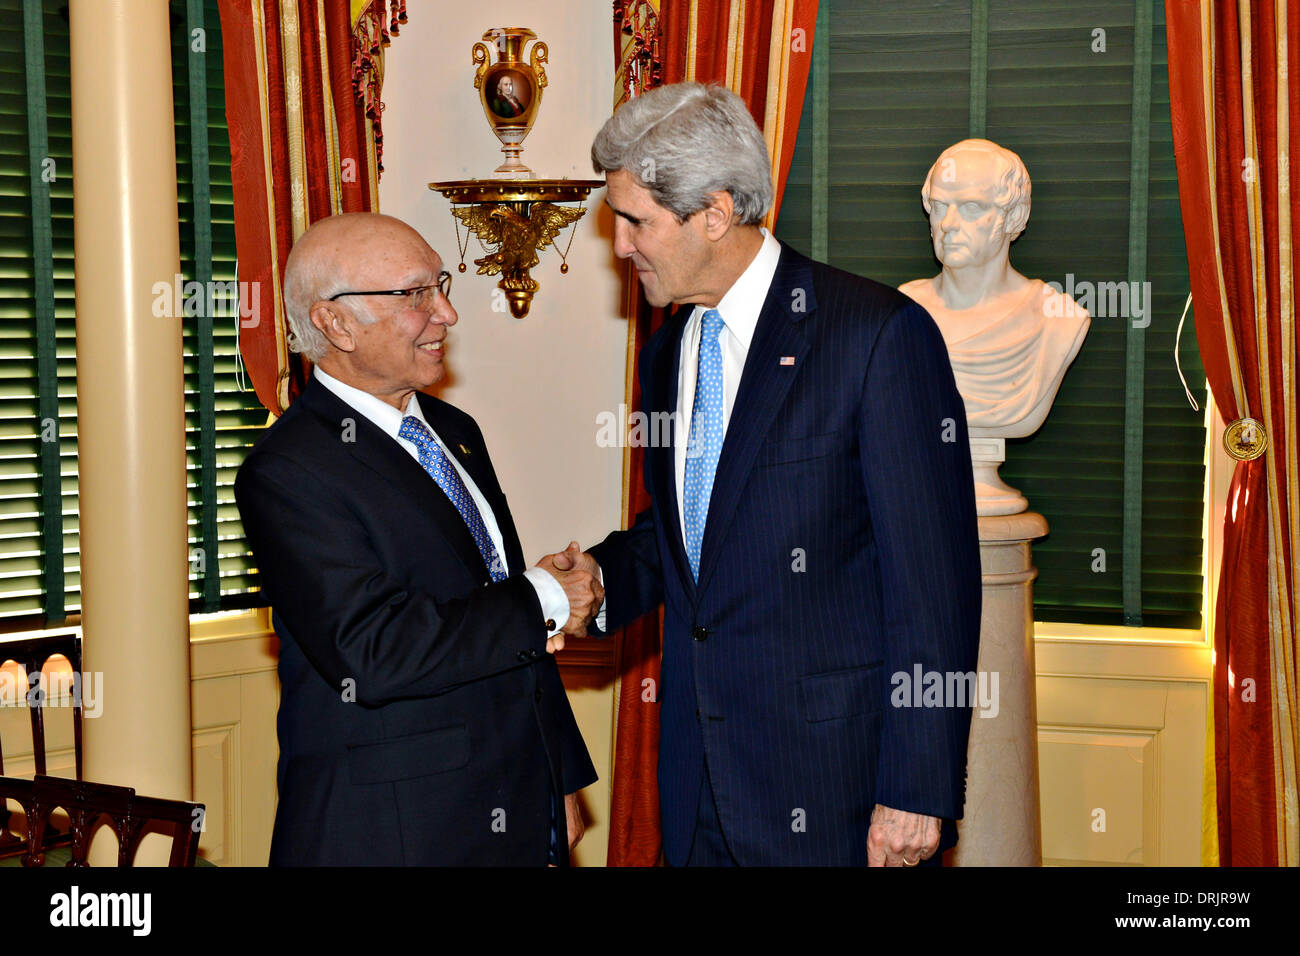 US Secretary of State John Kerry welcomes Pakistani National Security and Foreign Affairs Advisor Sartaj Aziz to the Department of State for the U.S.-Pakistan Strategic Dialogue Plenary Session January 27, 2014 in Washington, D.C. - Stock Image